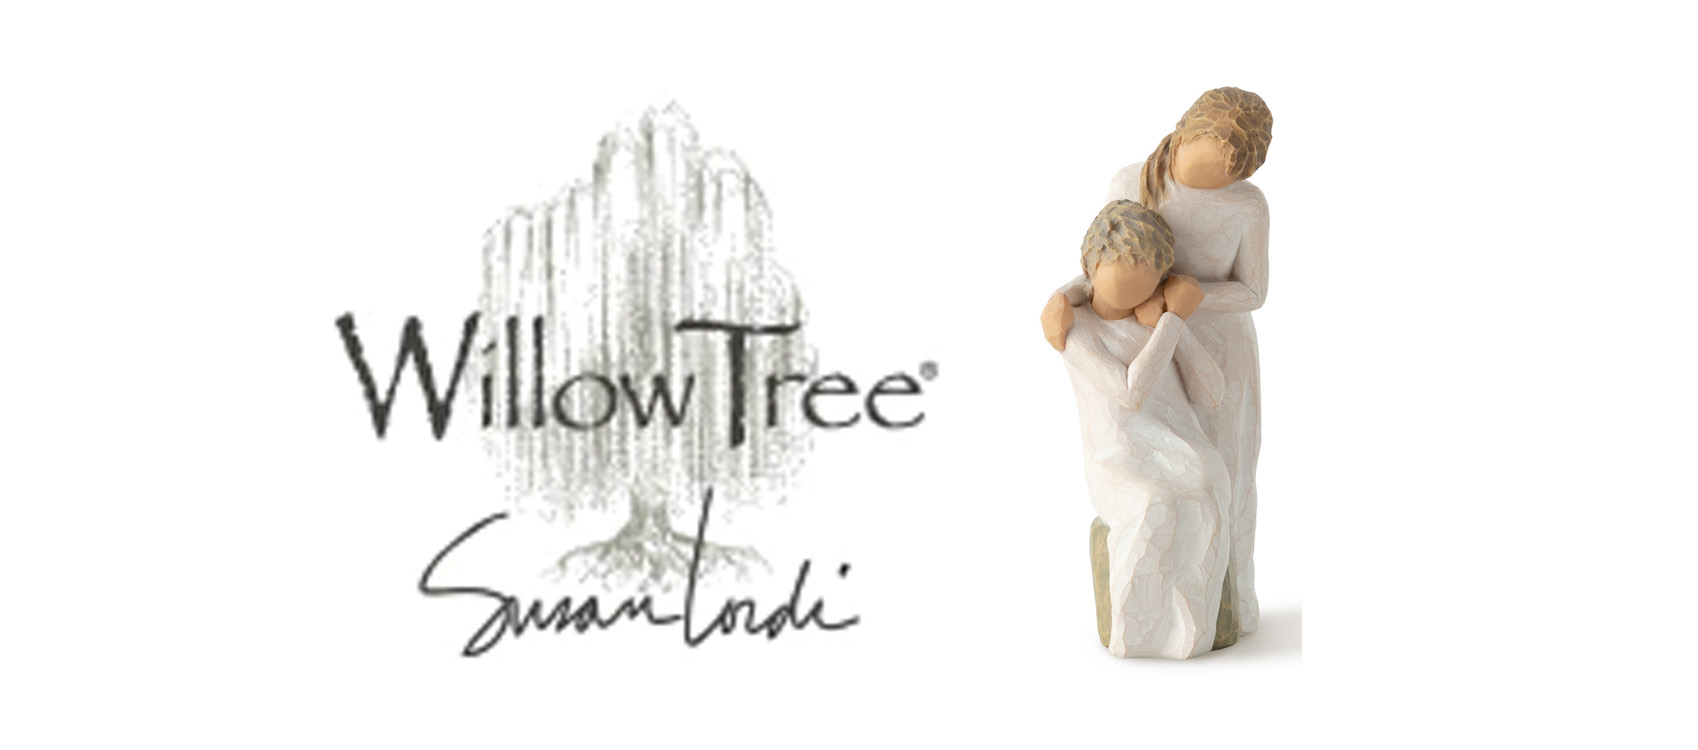 Demdaco, Willow tree, mothers day gifts, angels